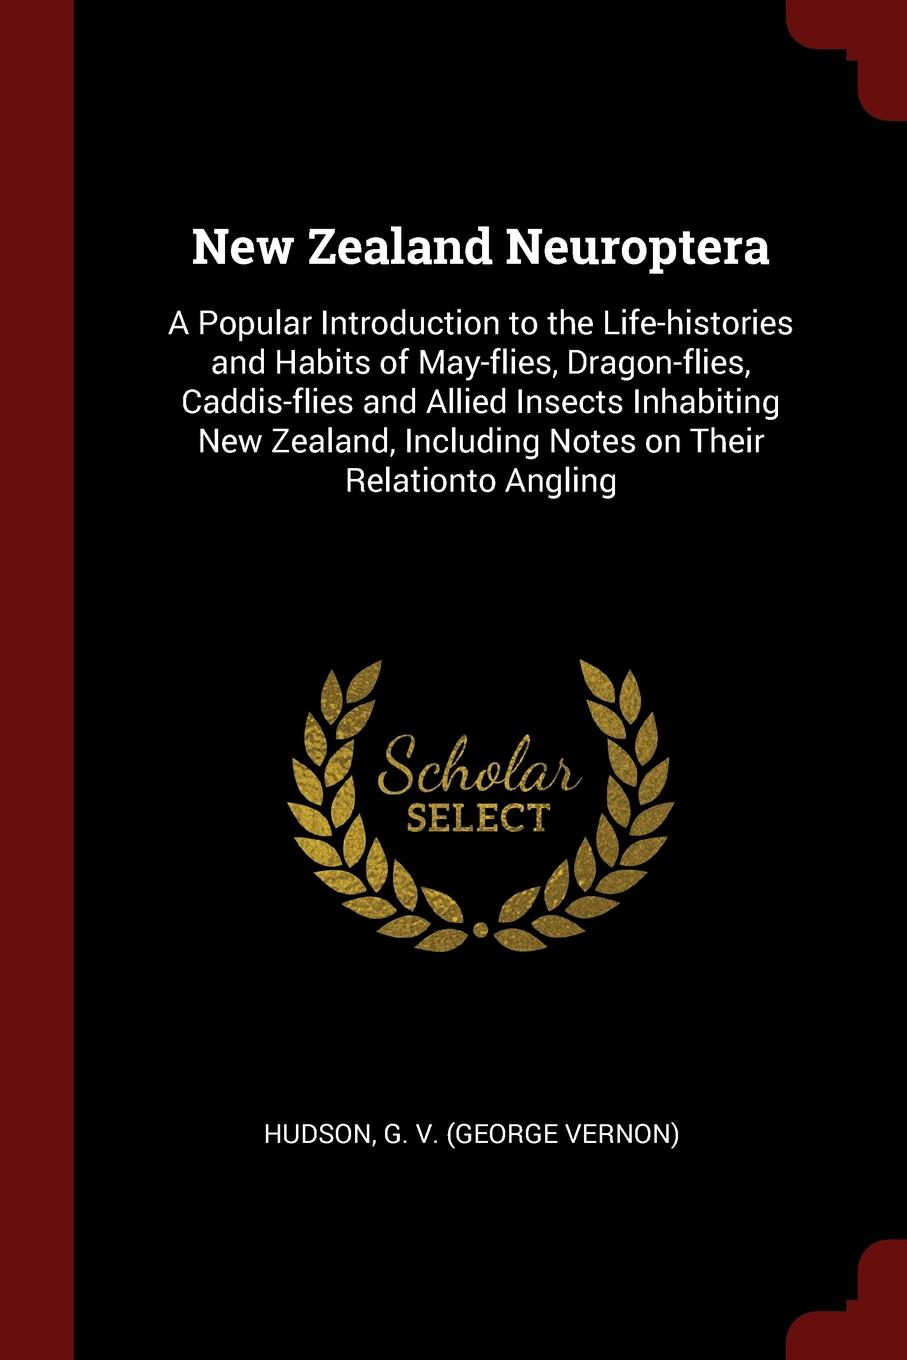 New Zealand Neuroptera. A Popular Introduction to the Life-histories and Habits of May-flies, Dragon-flies, Caddis-flies and Allied Insects Inhabiting New Zealand, Including Notes on Their Relationto Angling phlebotomine sand flies of central sudan